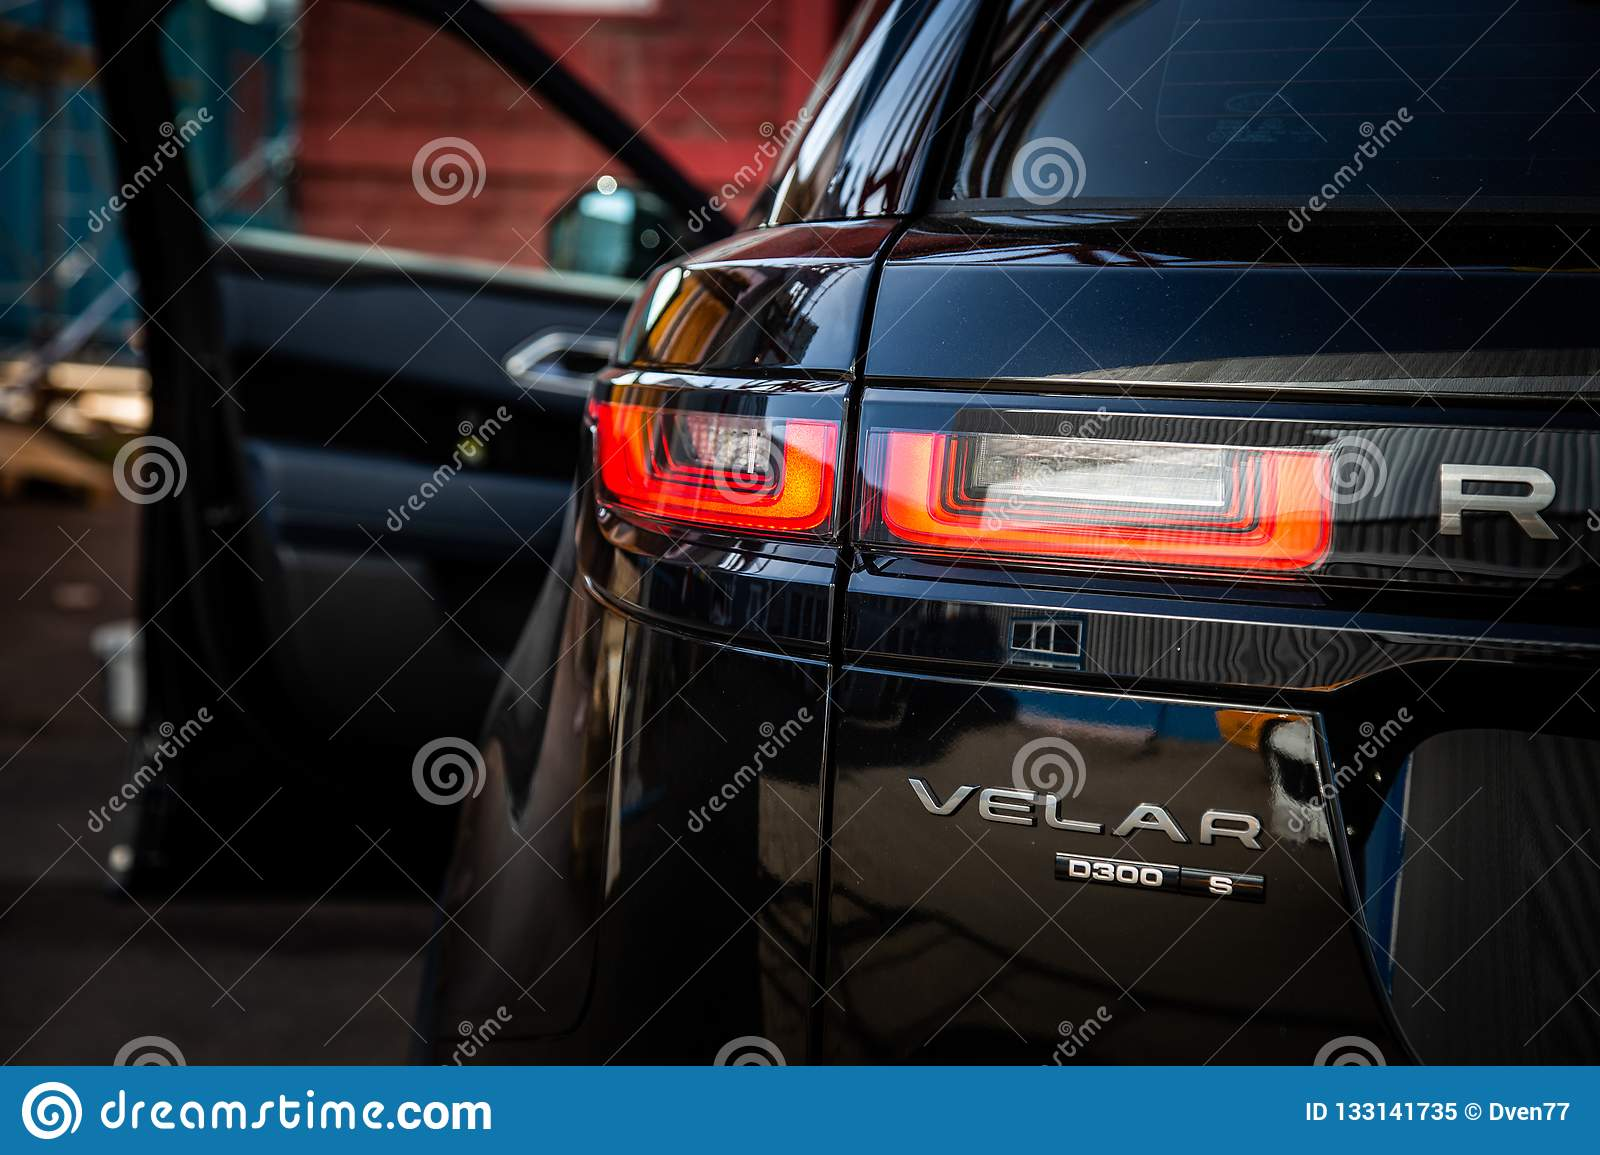 Moscow Autumn 2018 The Land Rover Range Rover Velar In Black C Editorial Image Image Of Light Land 133141735